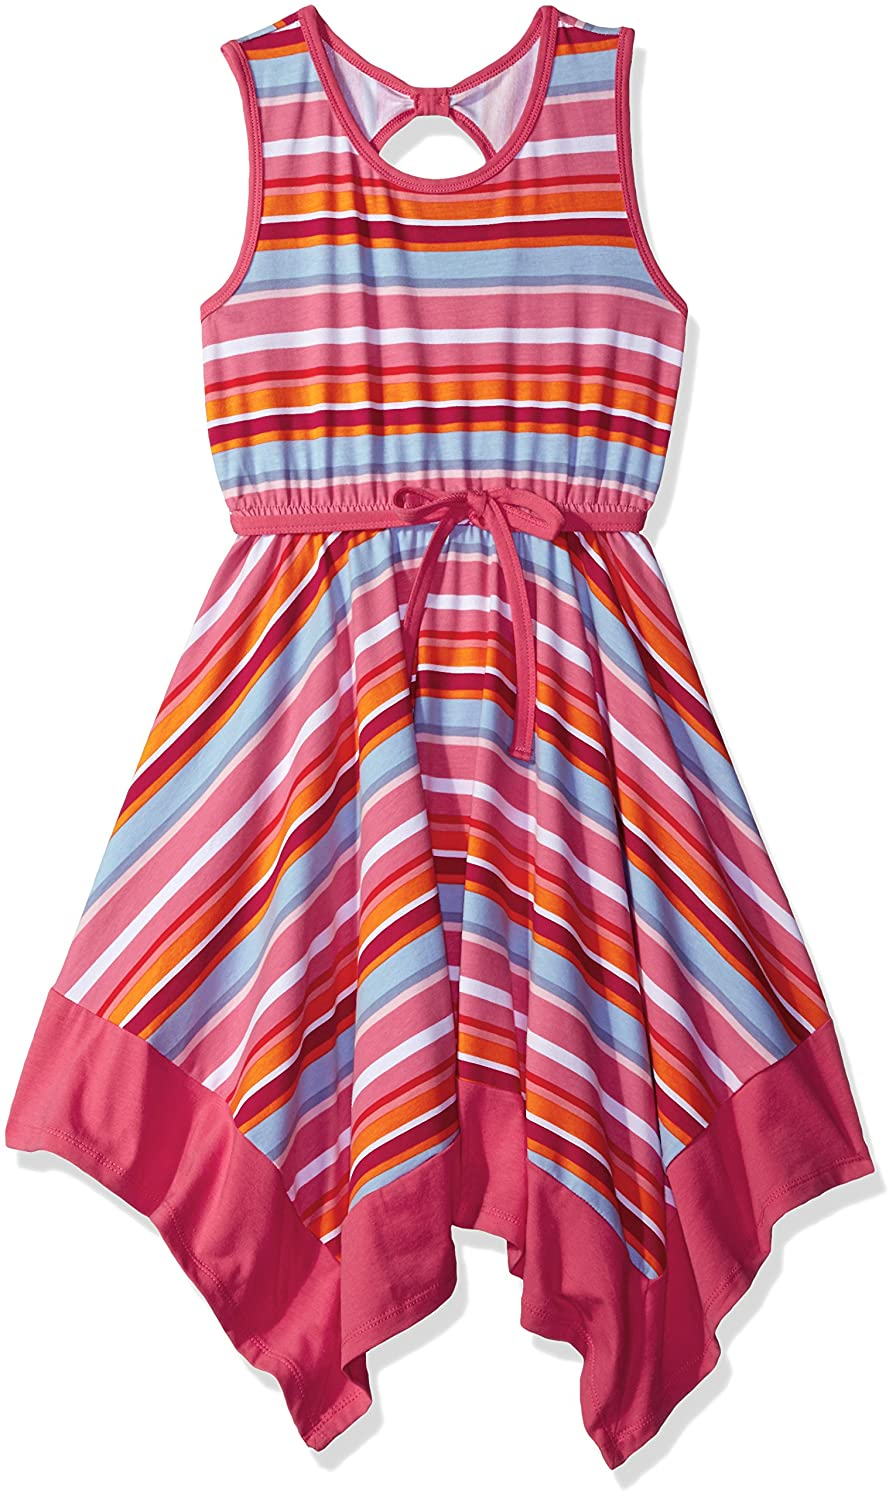 89a0872c759 Summer Dresses For Girls Bonniejeandresses.in - Gomes Weine AG